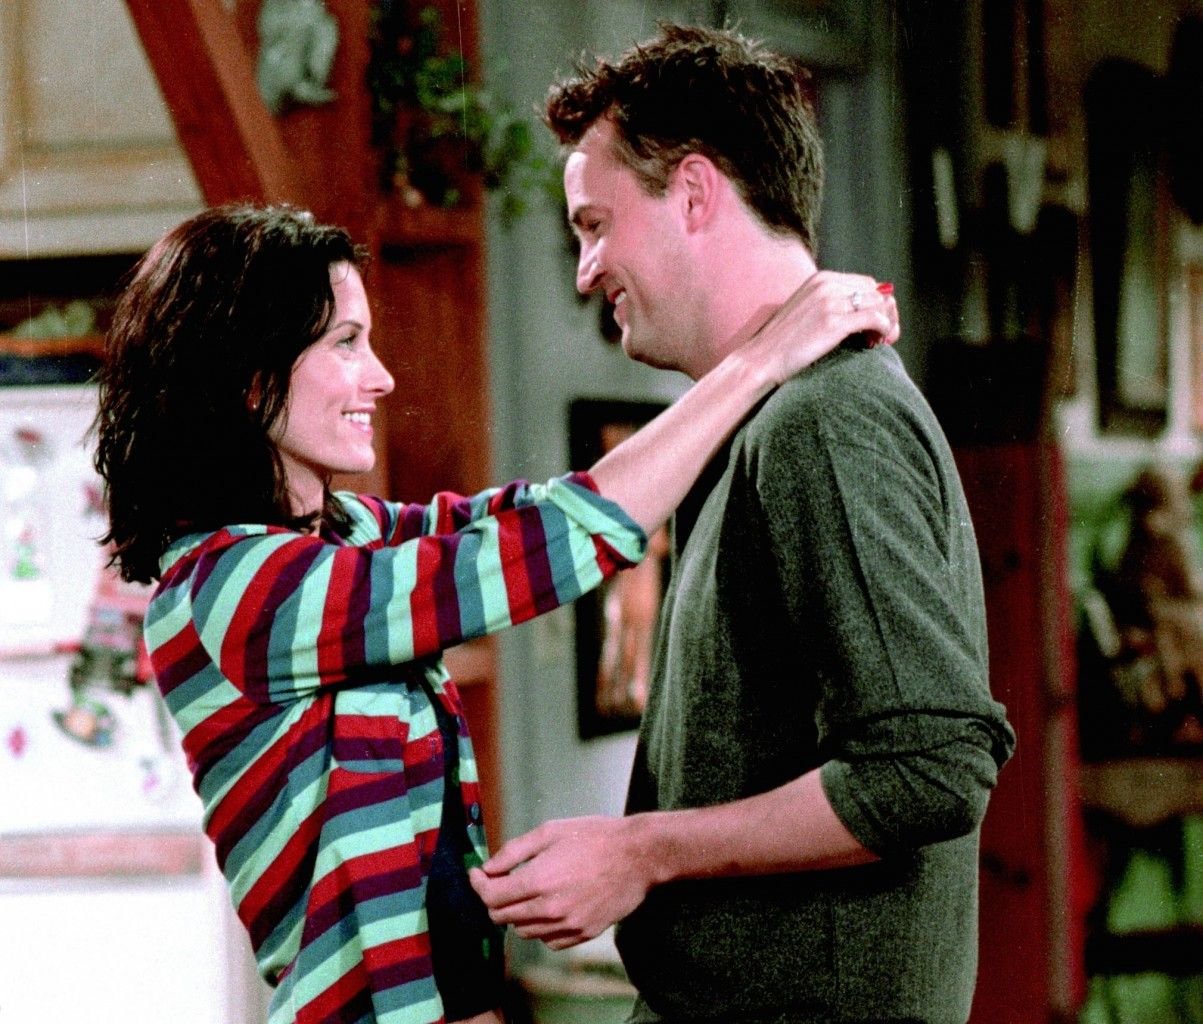 Friends: Chandler's Love Interests Ranked - Fame10